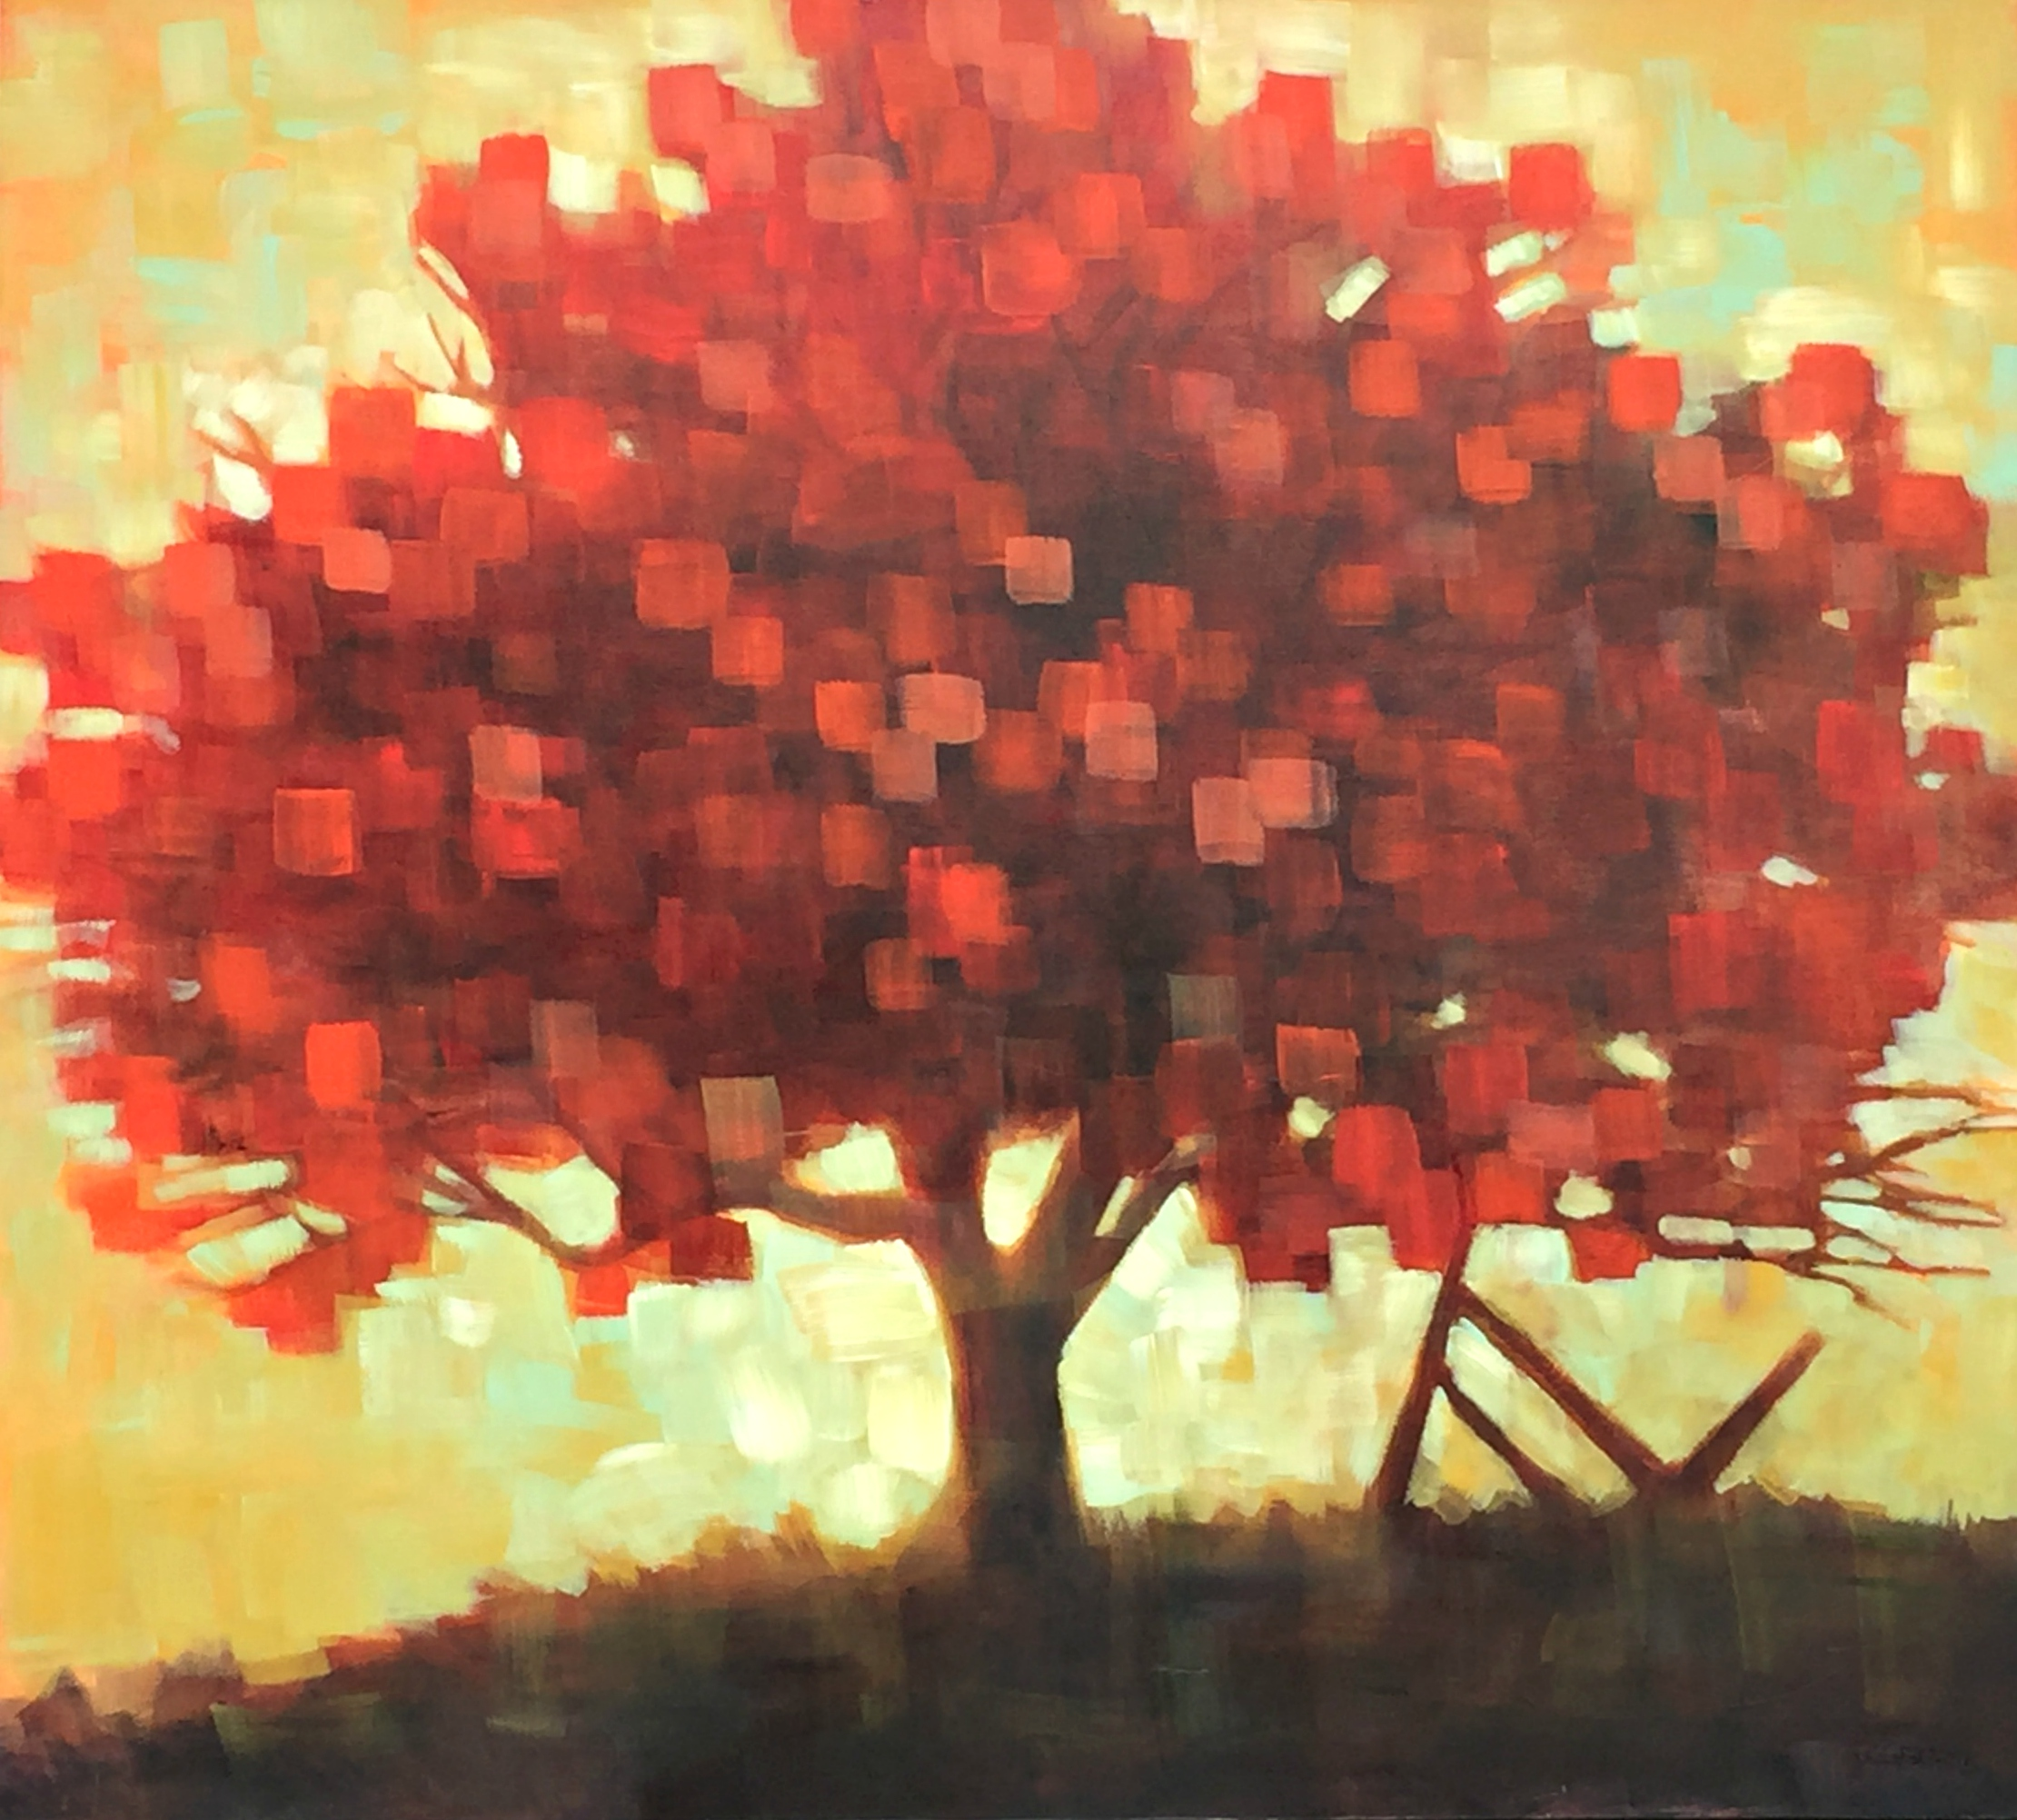 Red Glow, acrylic tree painting by Connie Geerts | Effusion Art Gallery + Glass Studio, Invermere BC